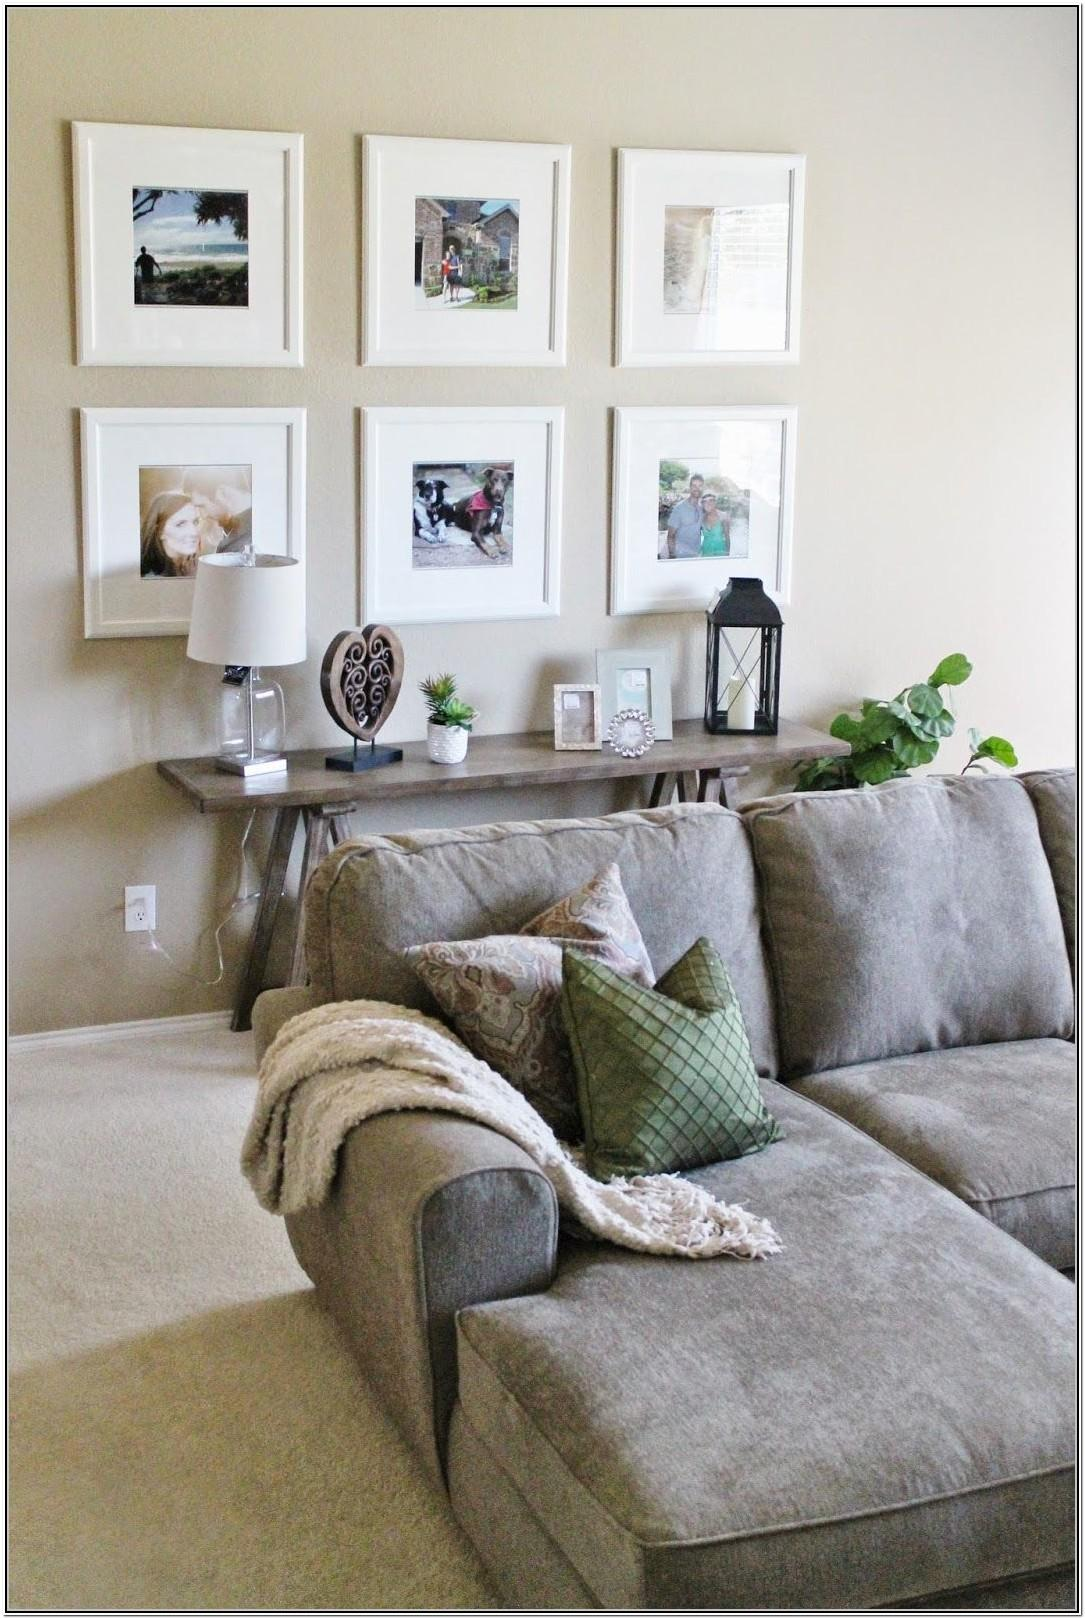 Living Room Picture Frame Arrangements On Wall Ideas